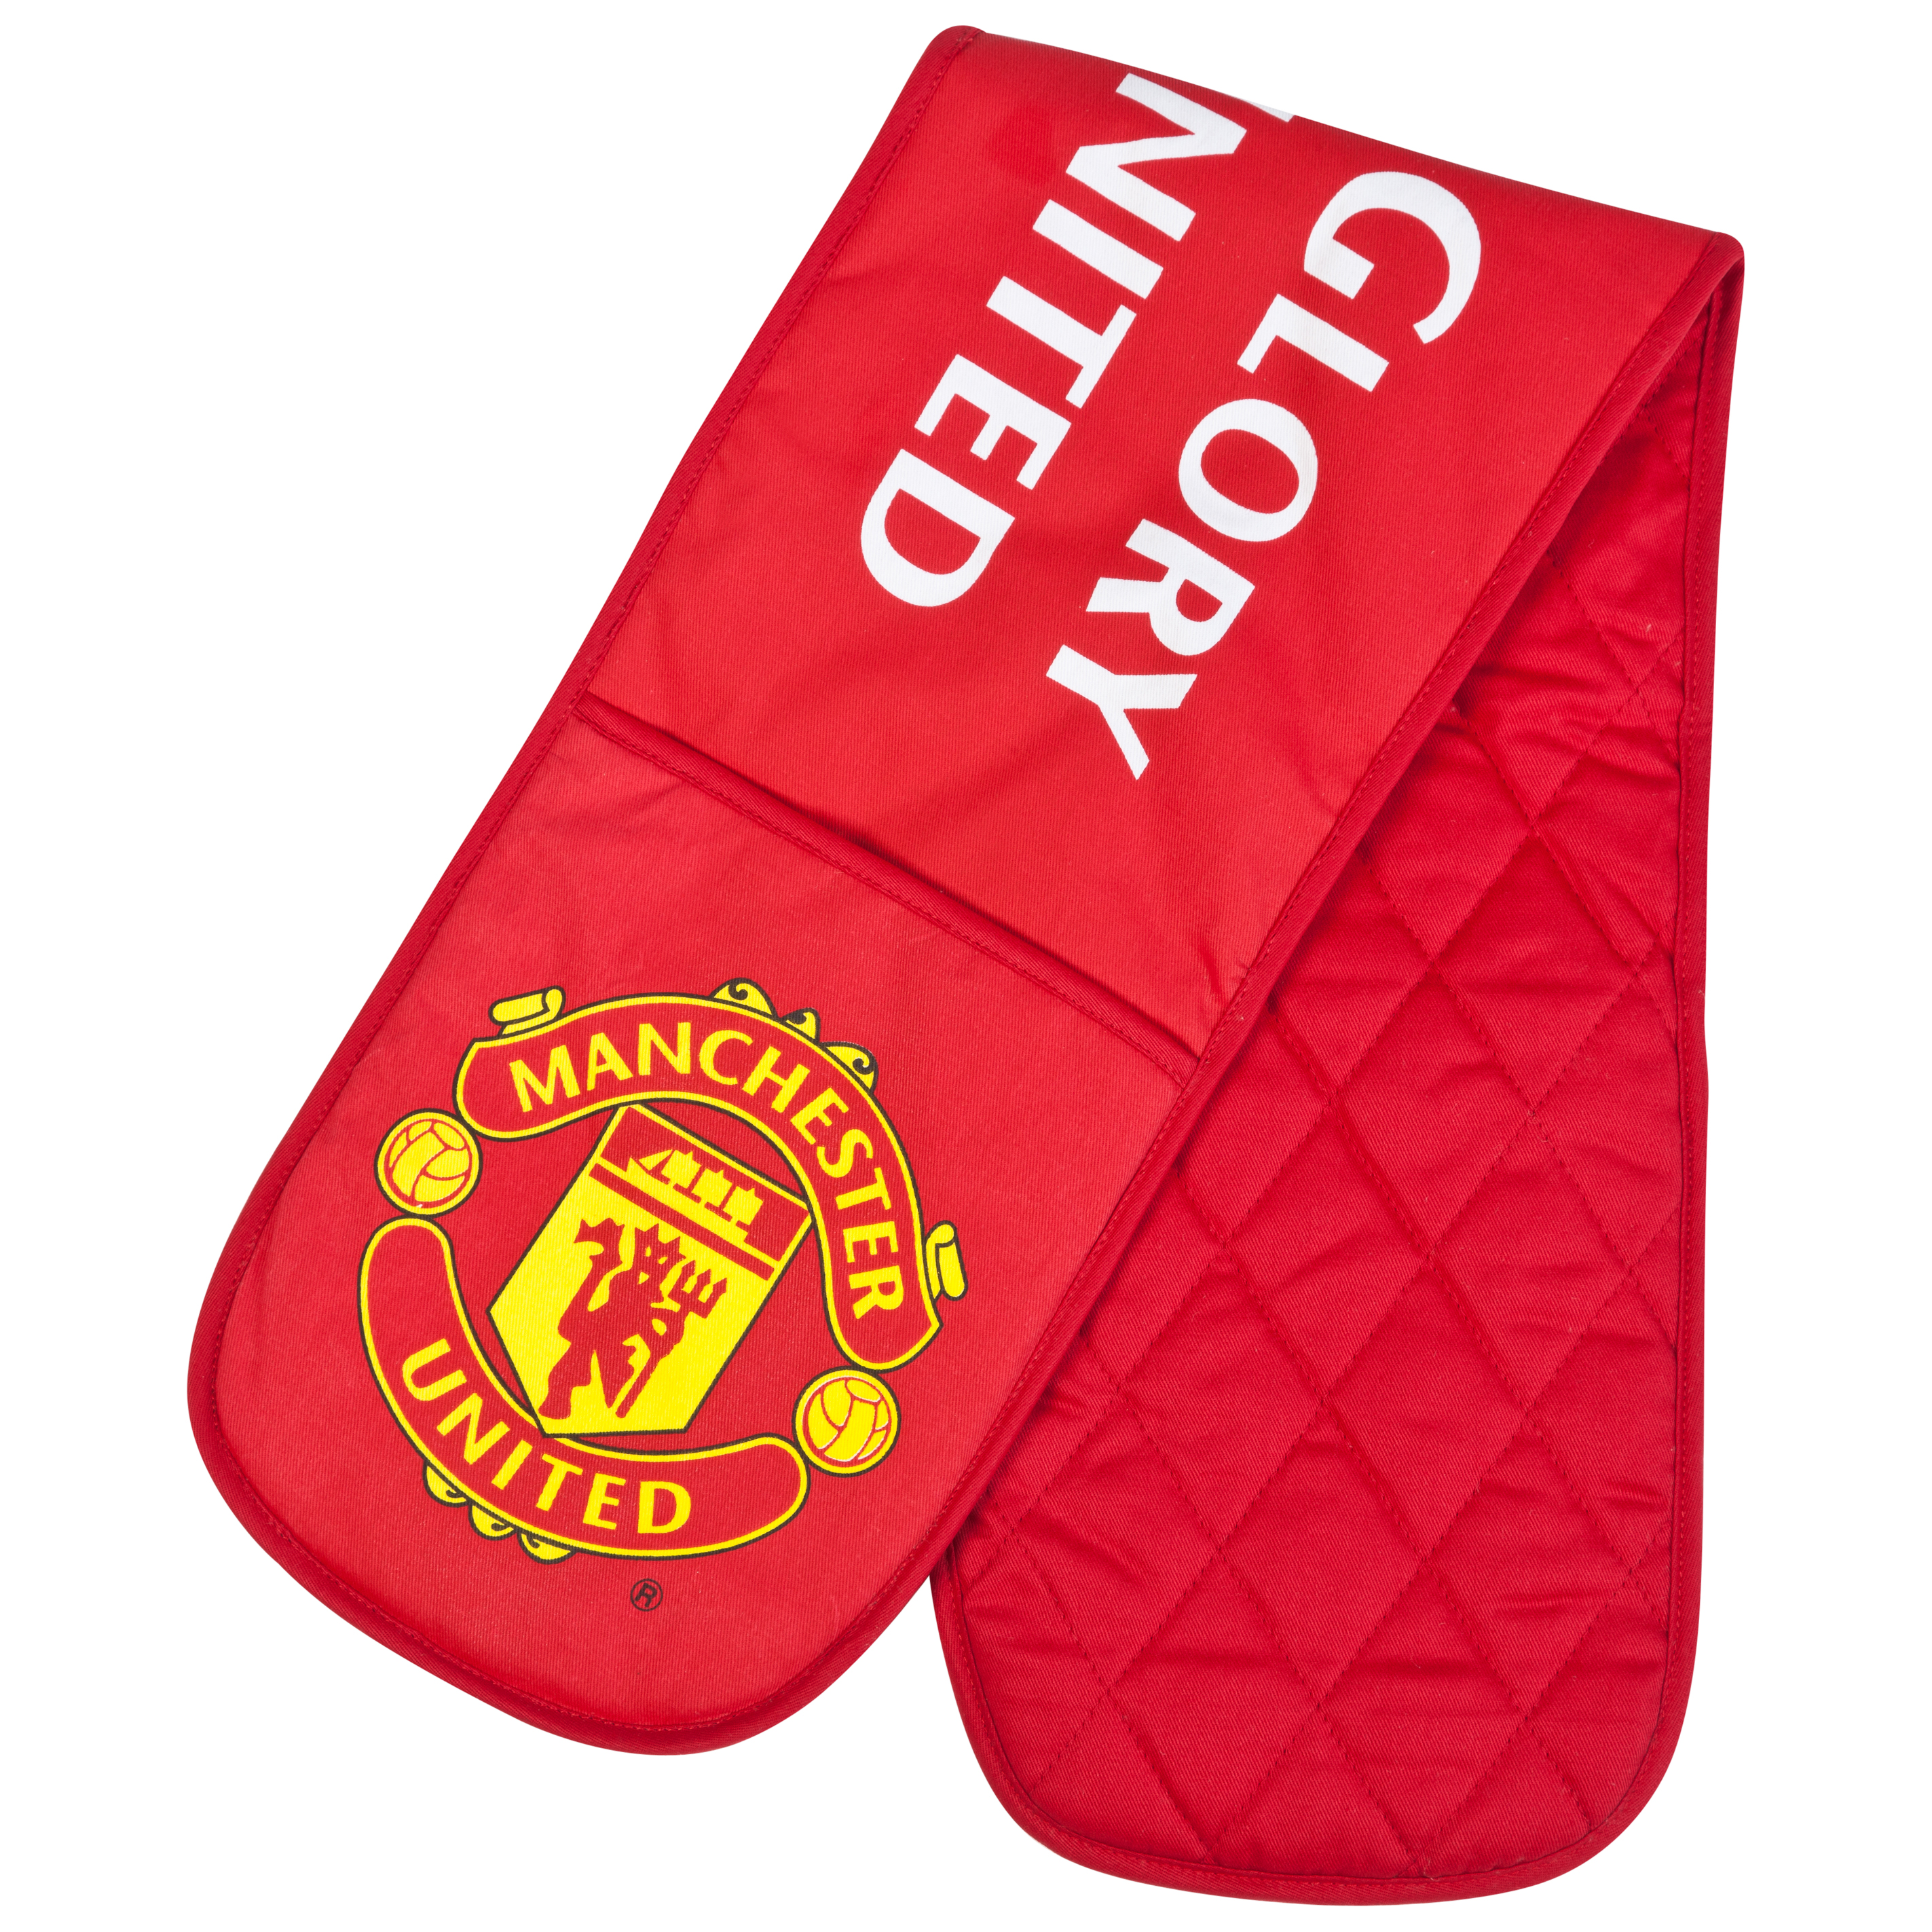 Manchester United Oven Gloves